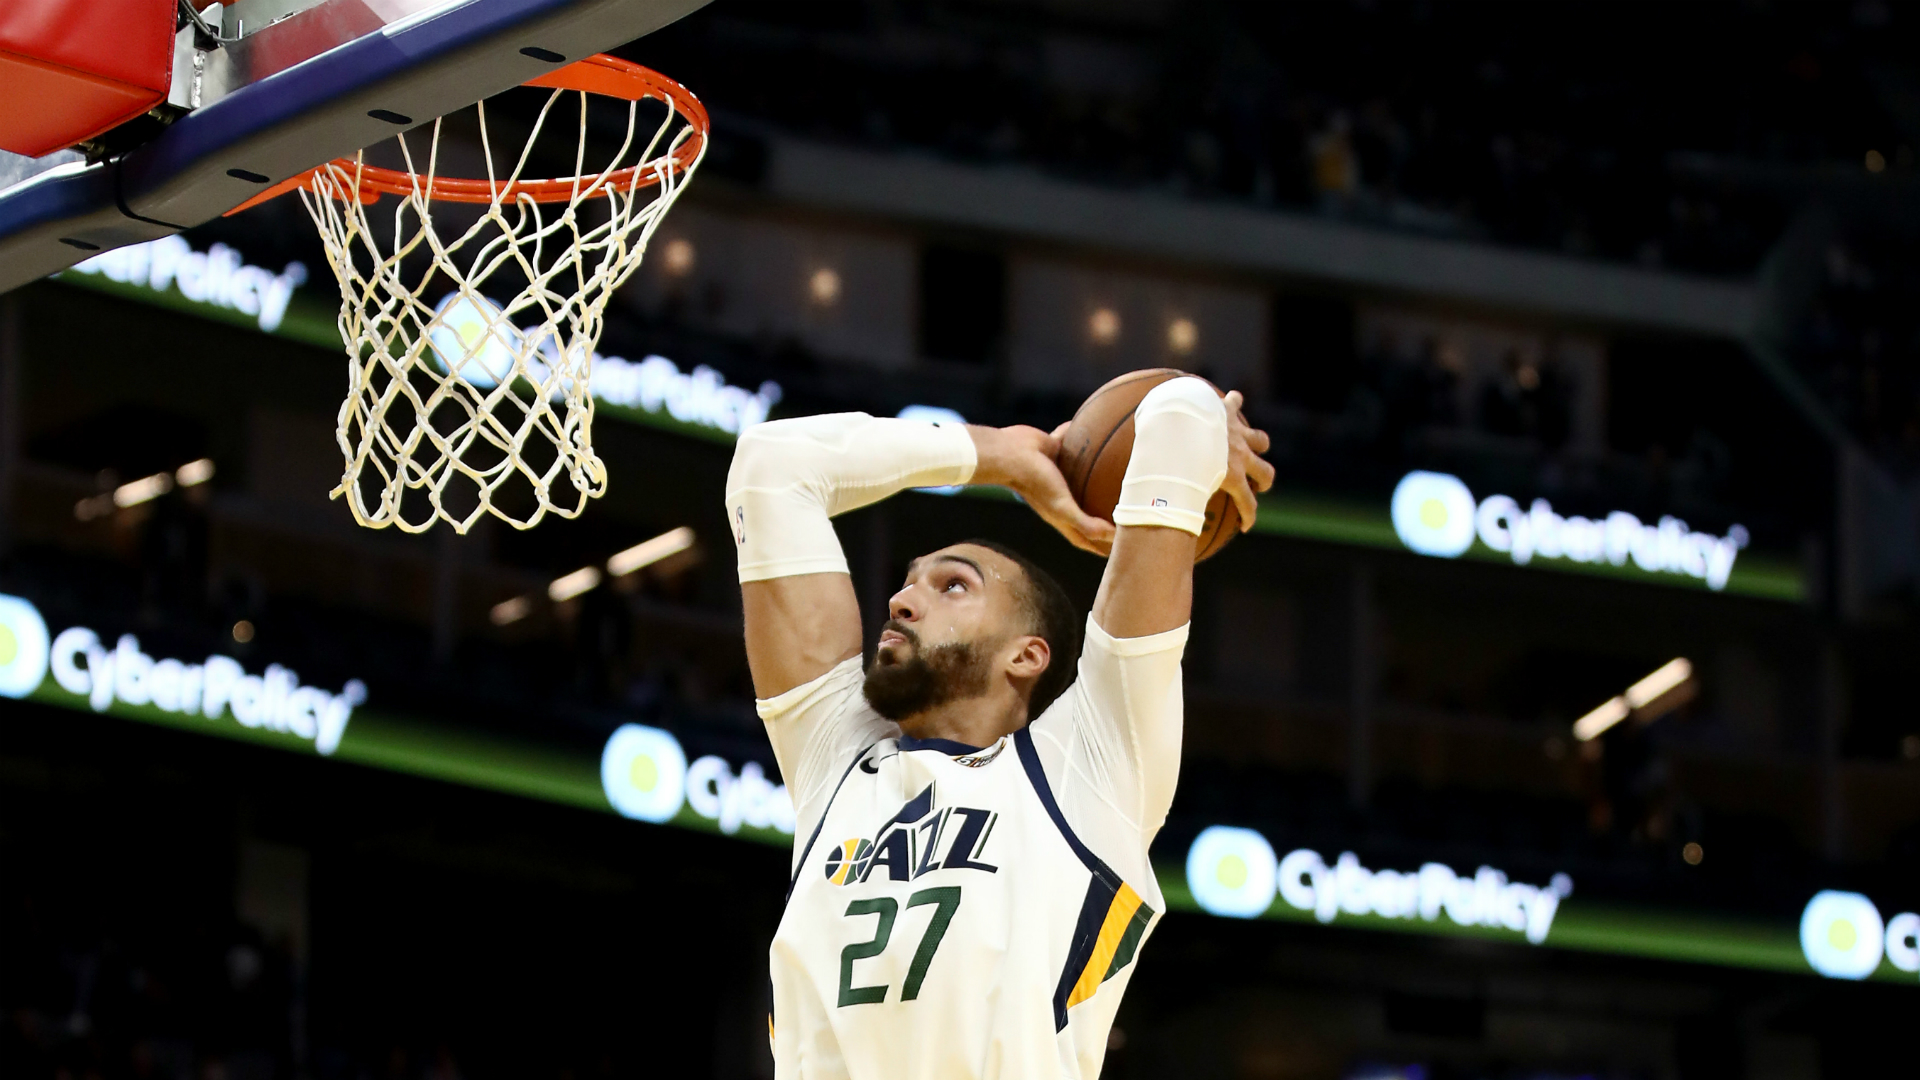 Coronavirus: 'Embarrassed' Gobert apologises for unknowingly spreading COVID-19